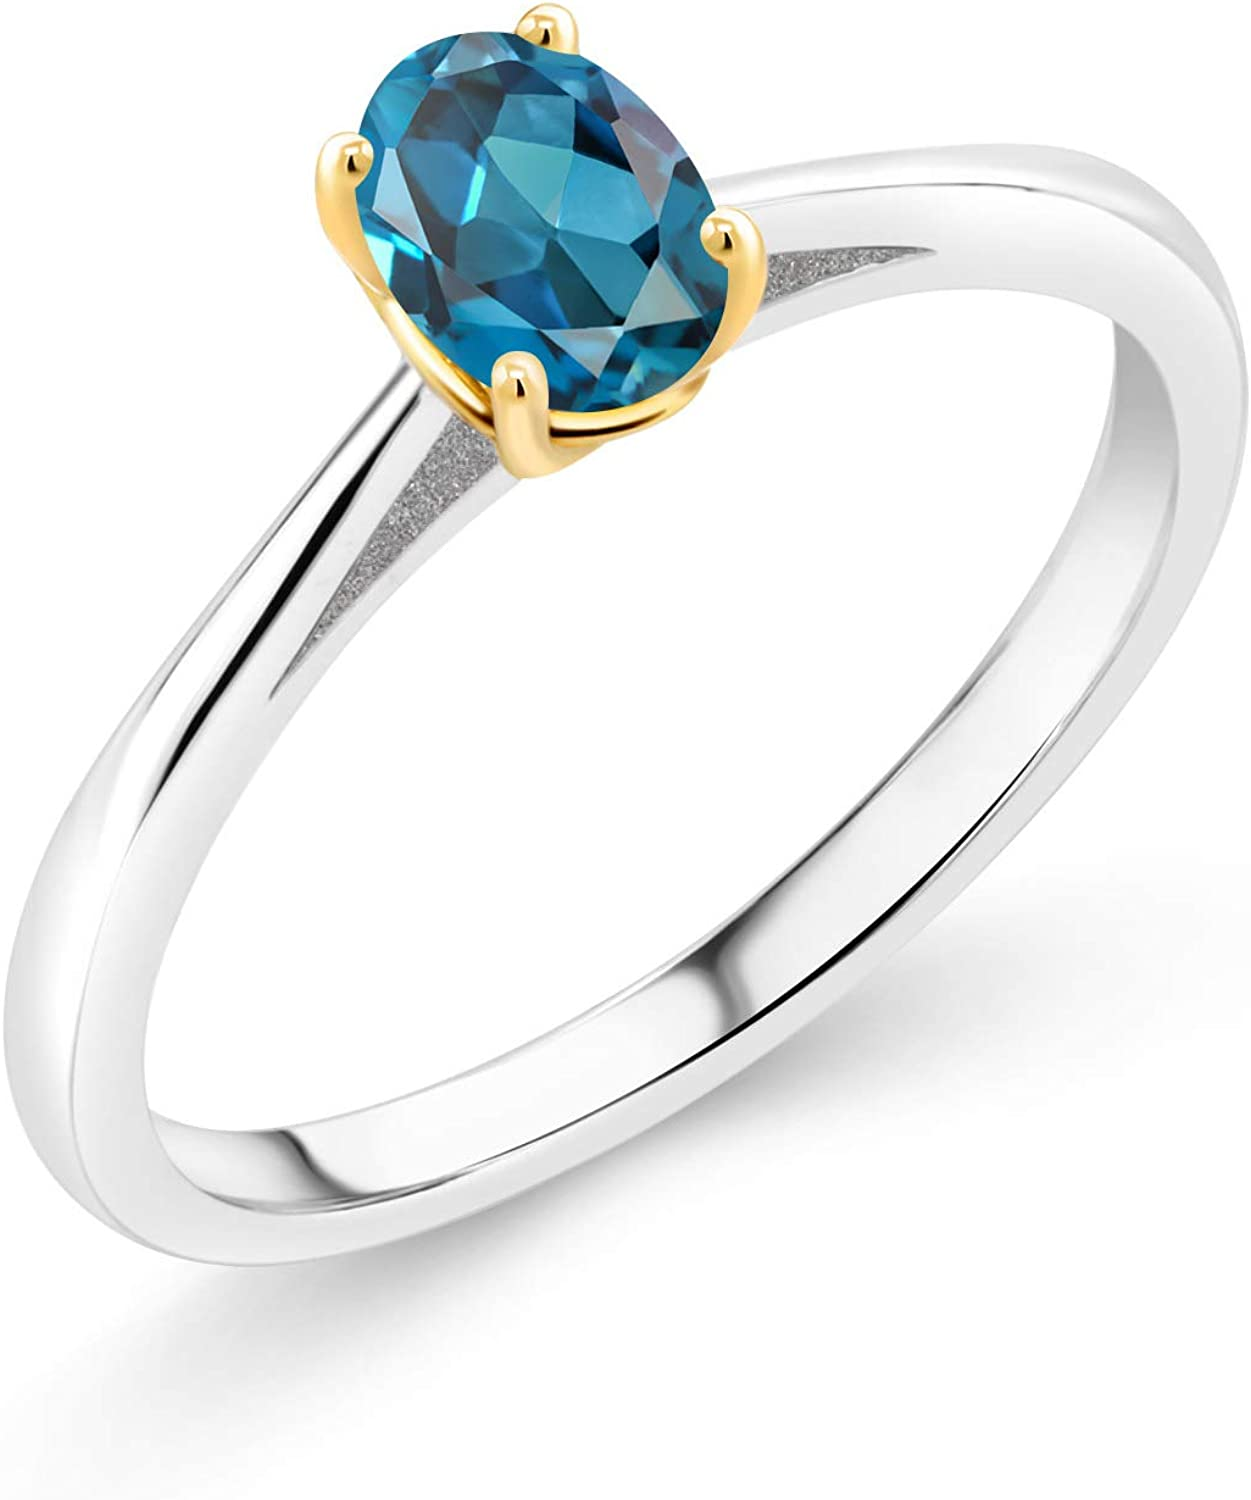 Gem Stone King London Blue Topaz 925 Sterling and 10K Yellow Gold Women Engagement Ring (0.60 Ct Oval, Gemstone Birthstone, Available in size 5, 6, 7, 8, 9)